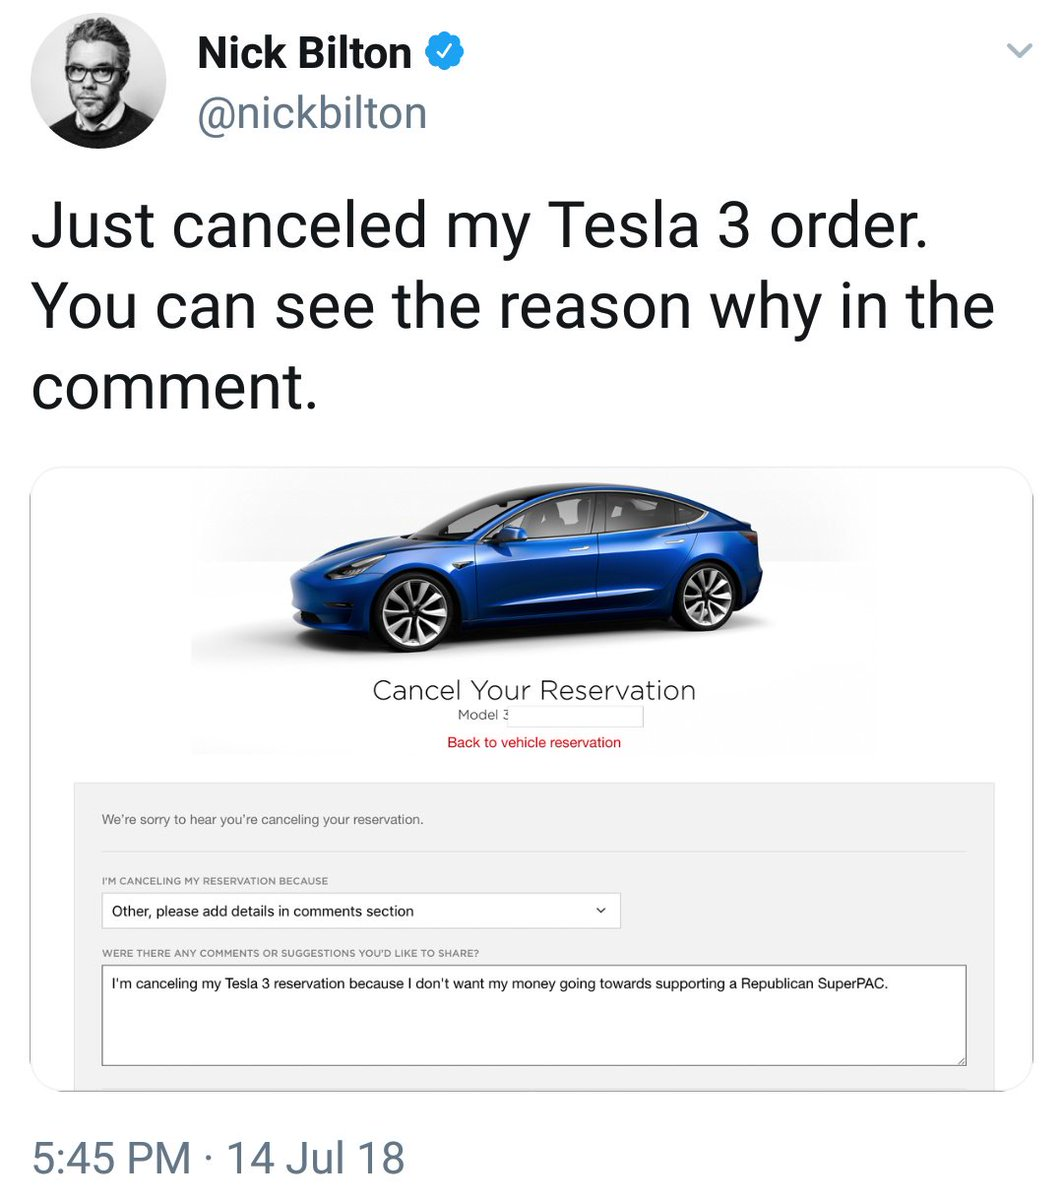 Tricking libs into buying fossil fuel burning cars to own the libs